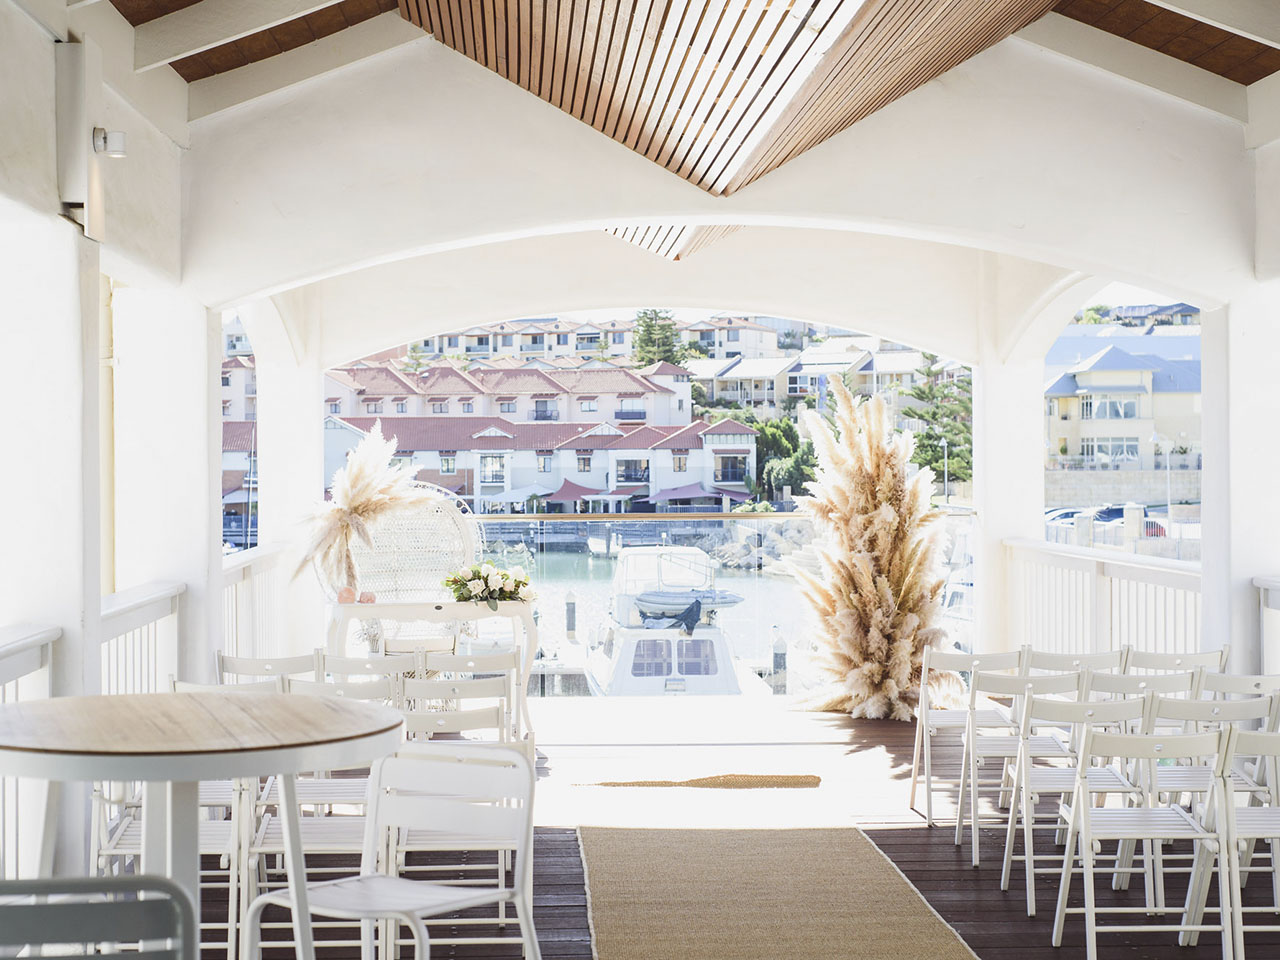 Wedding venue by the water